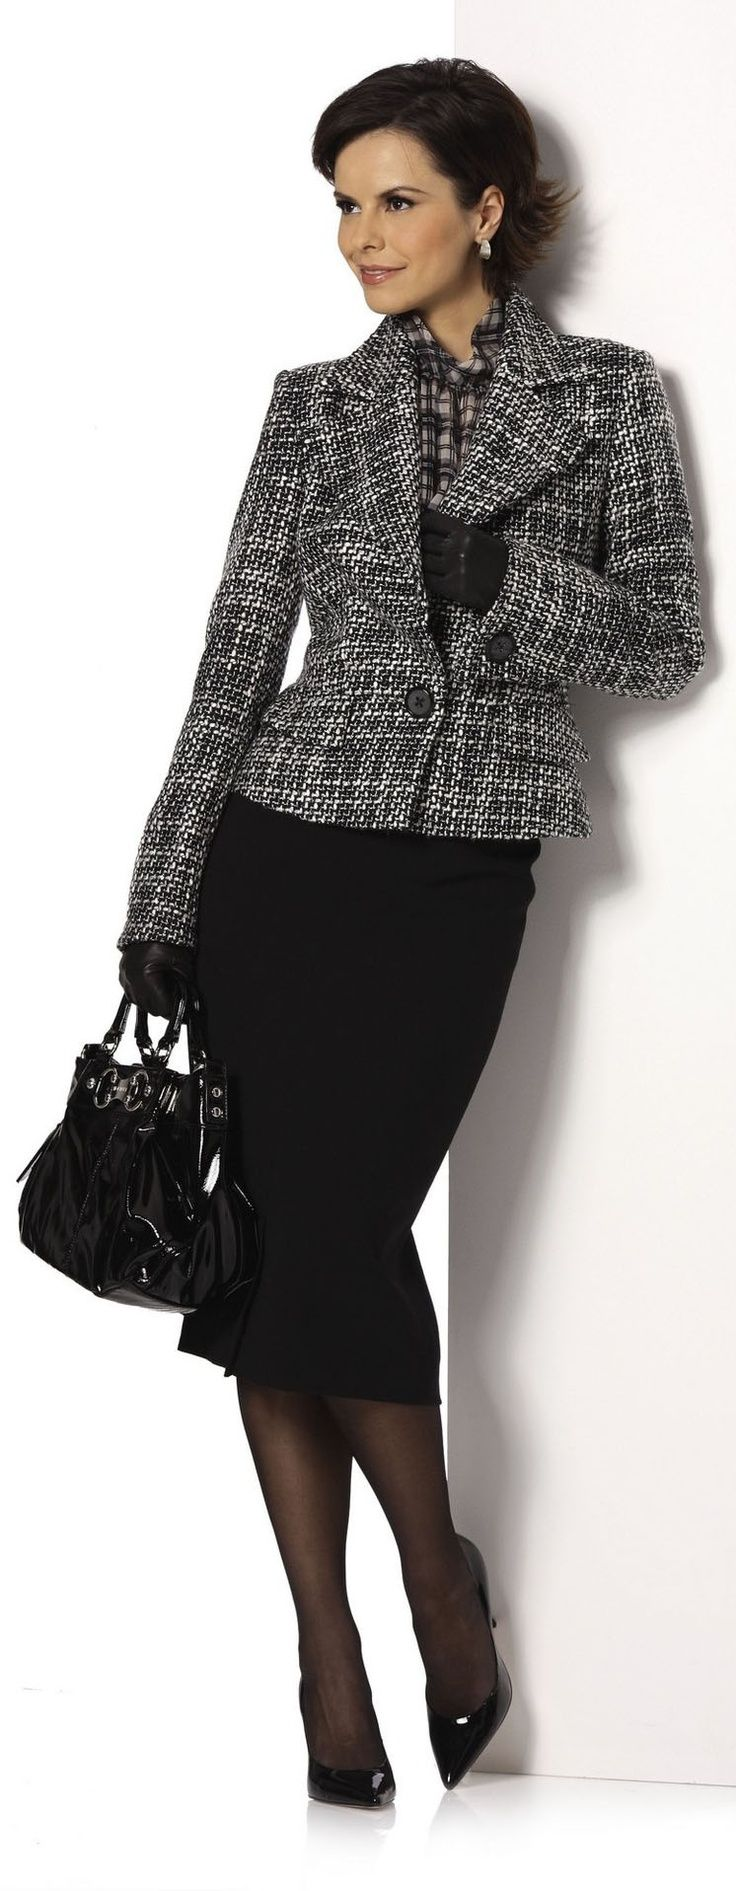 Business Suits Executive Bosslady Leader Power Suit The Beauty And Classic Elegance Of